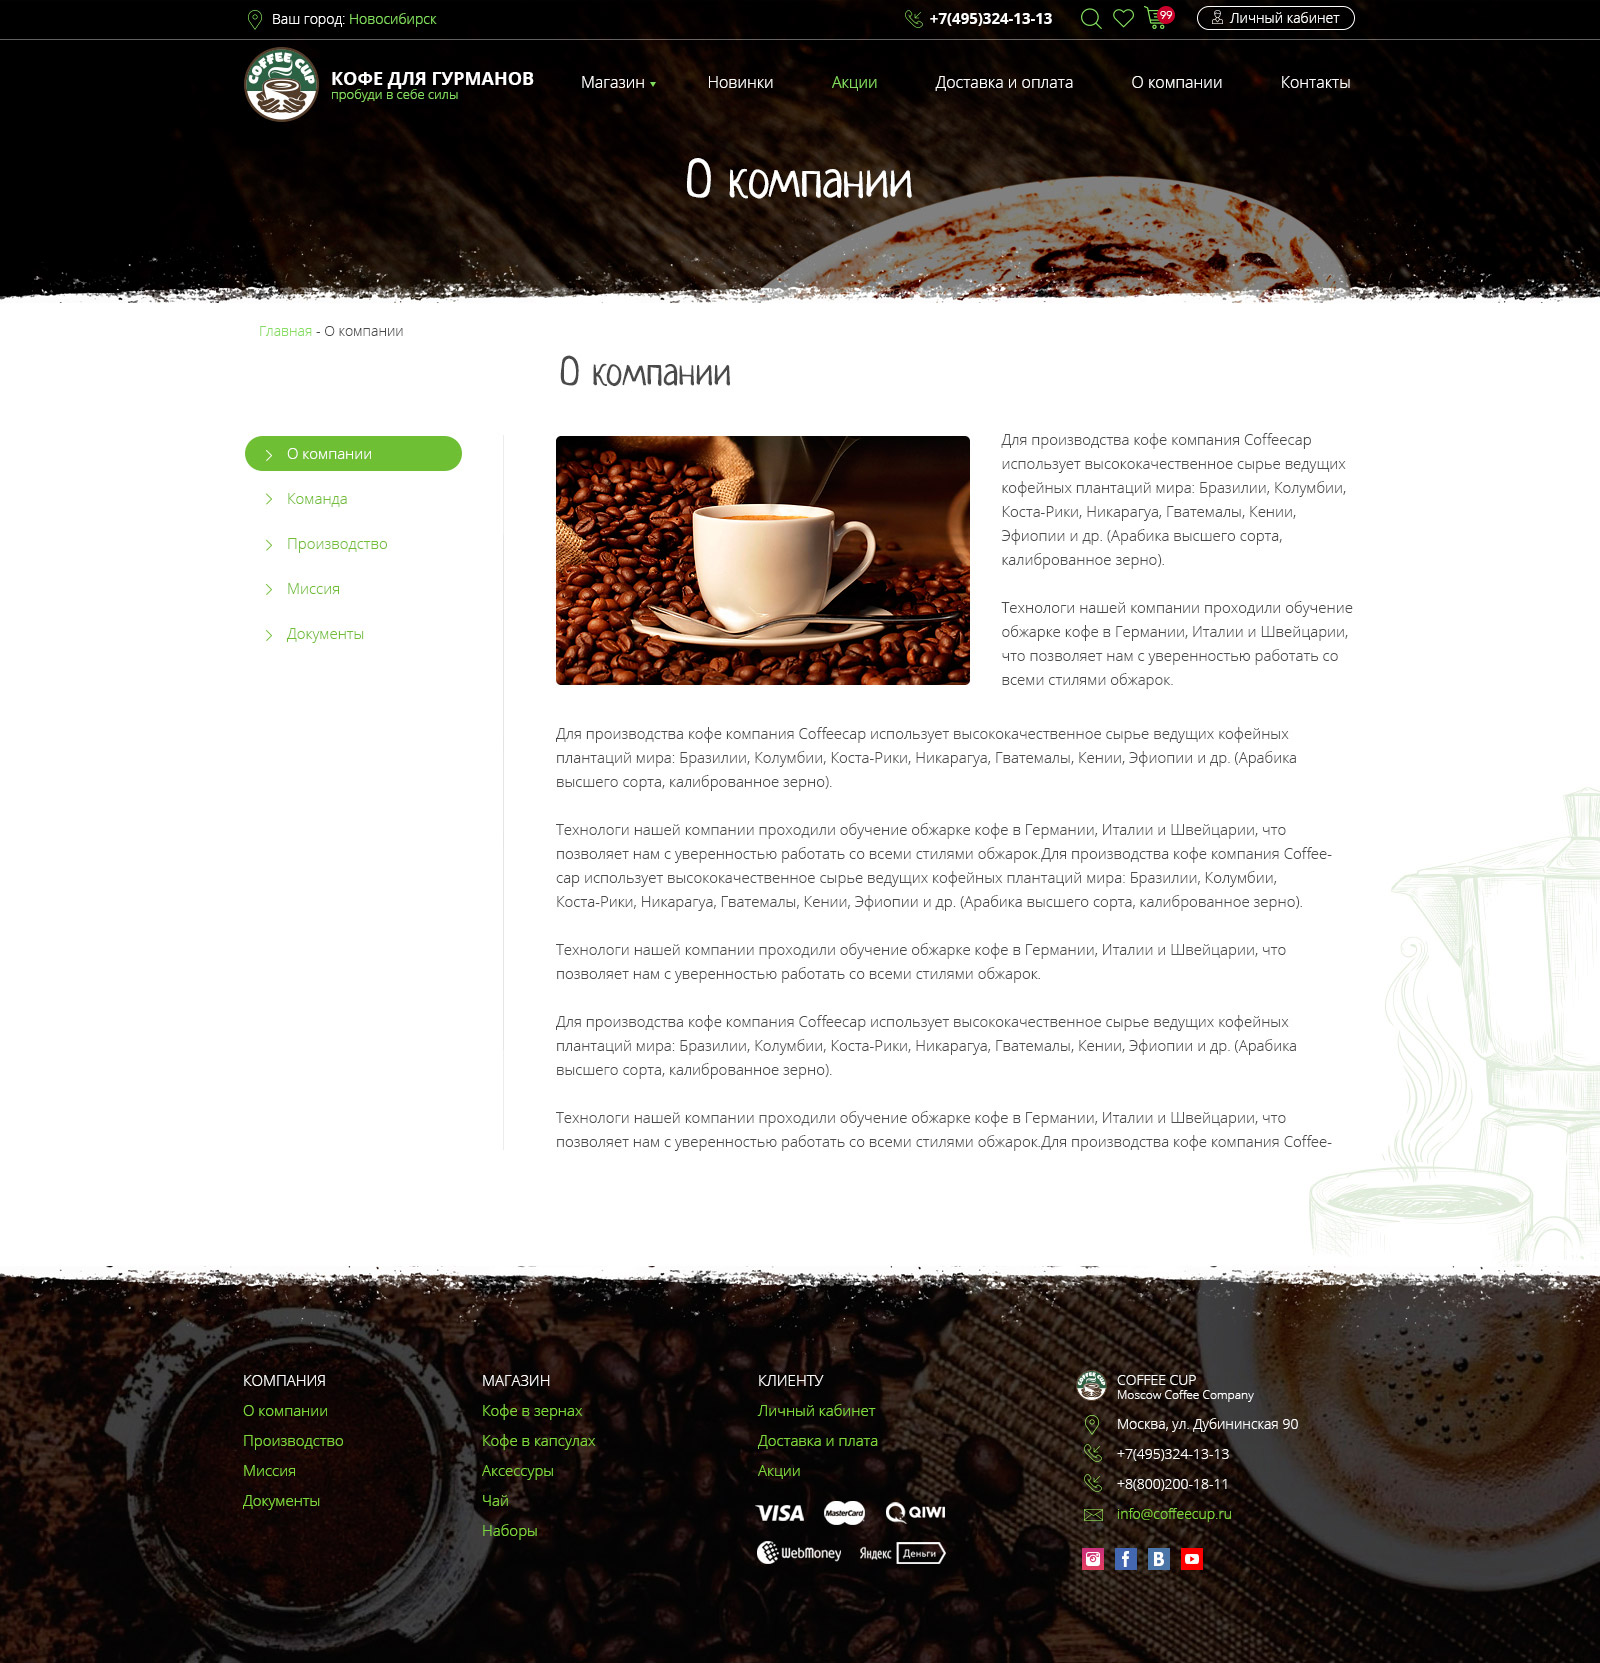 Company page design of Coffeecup website